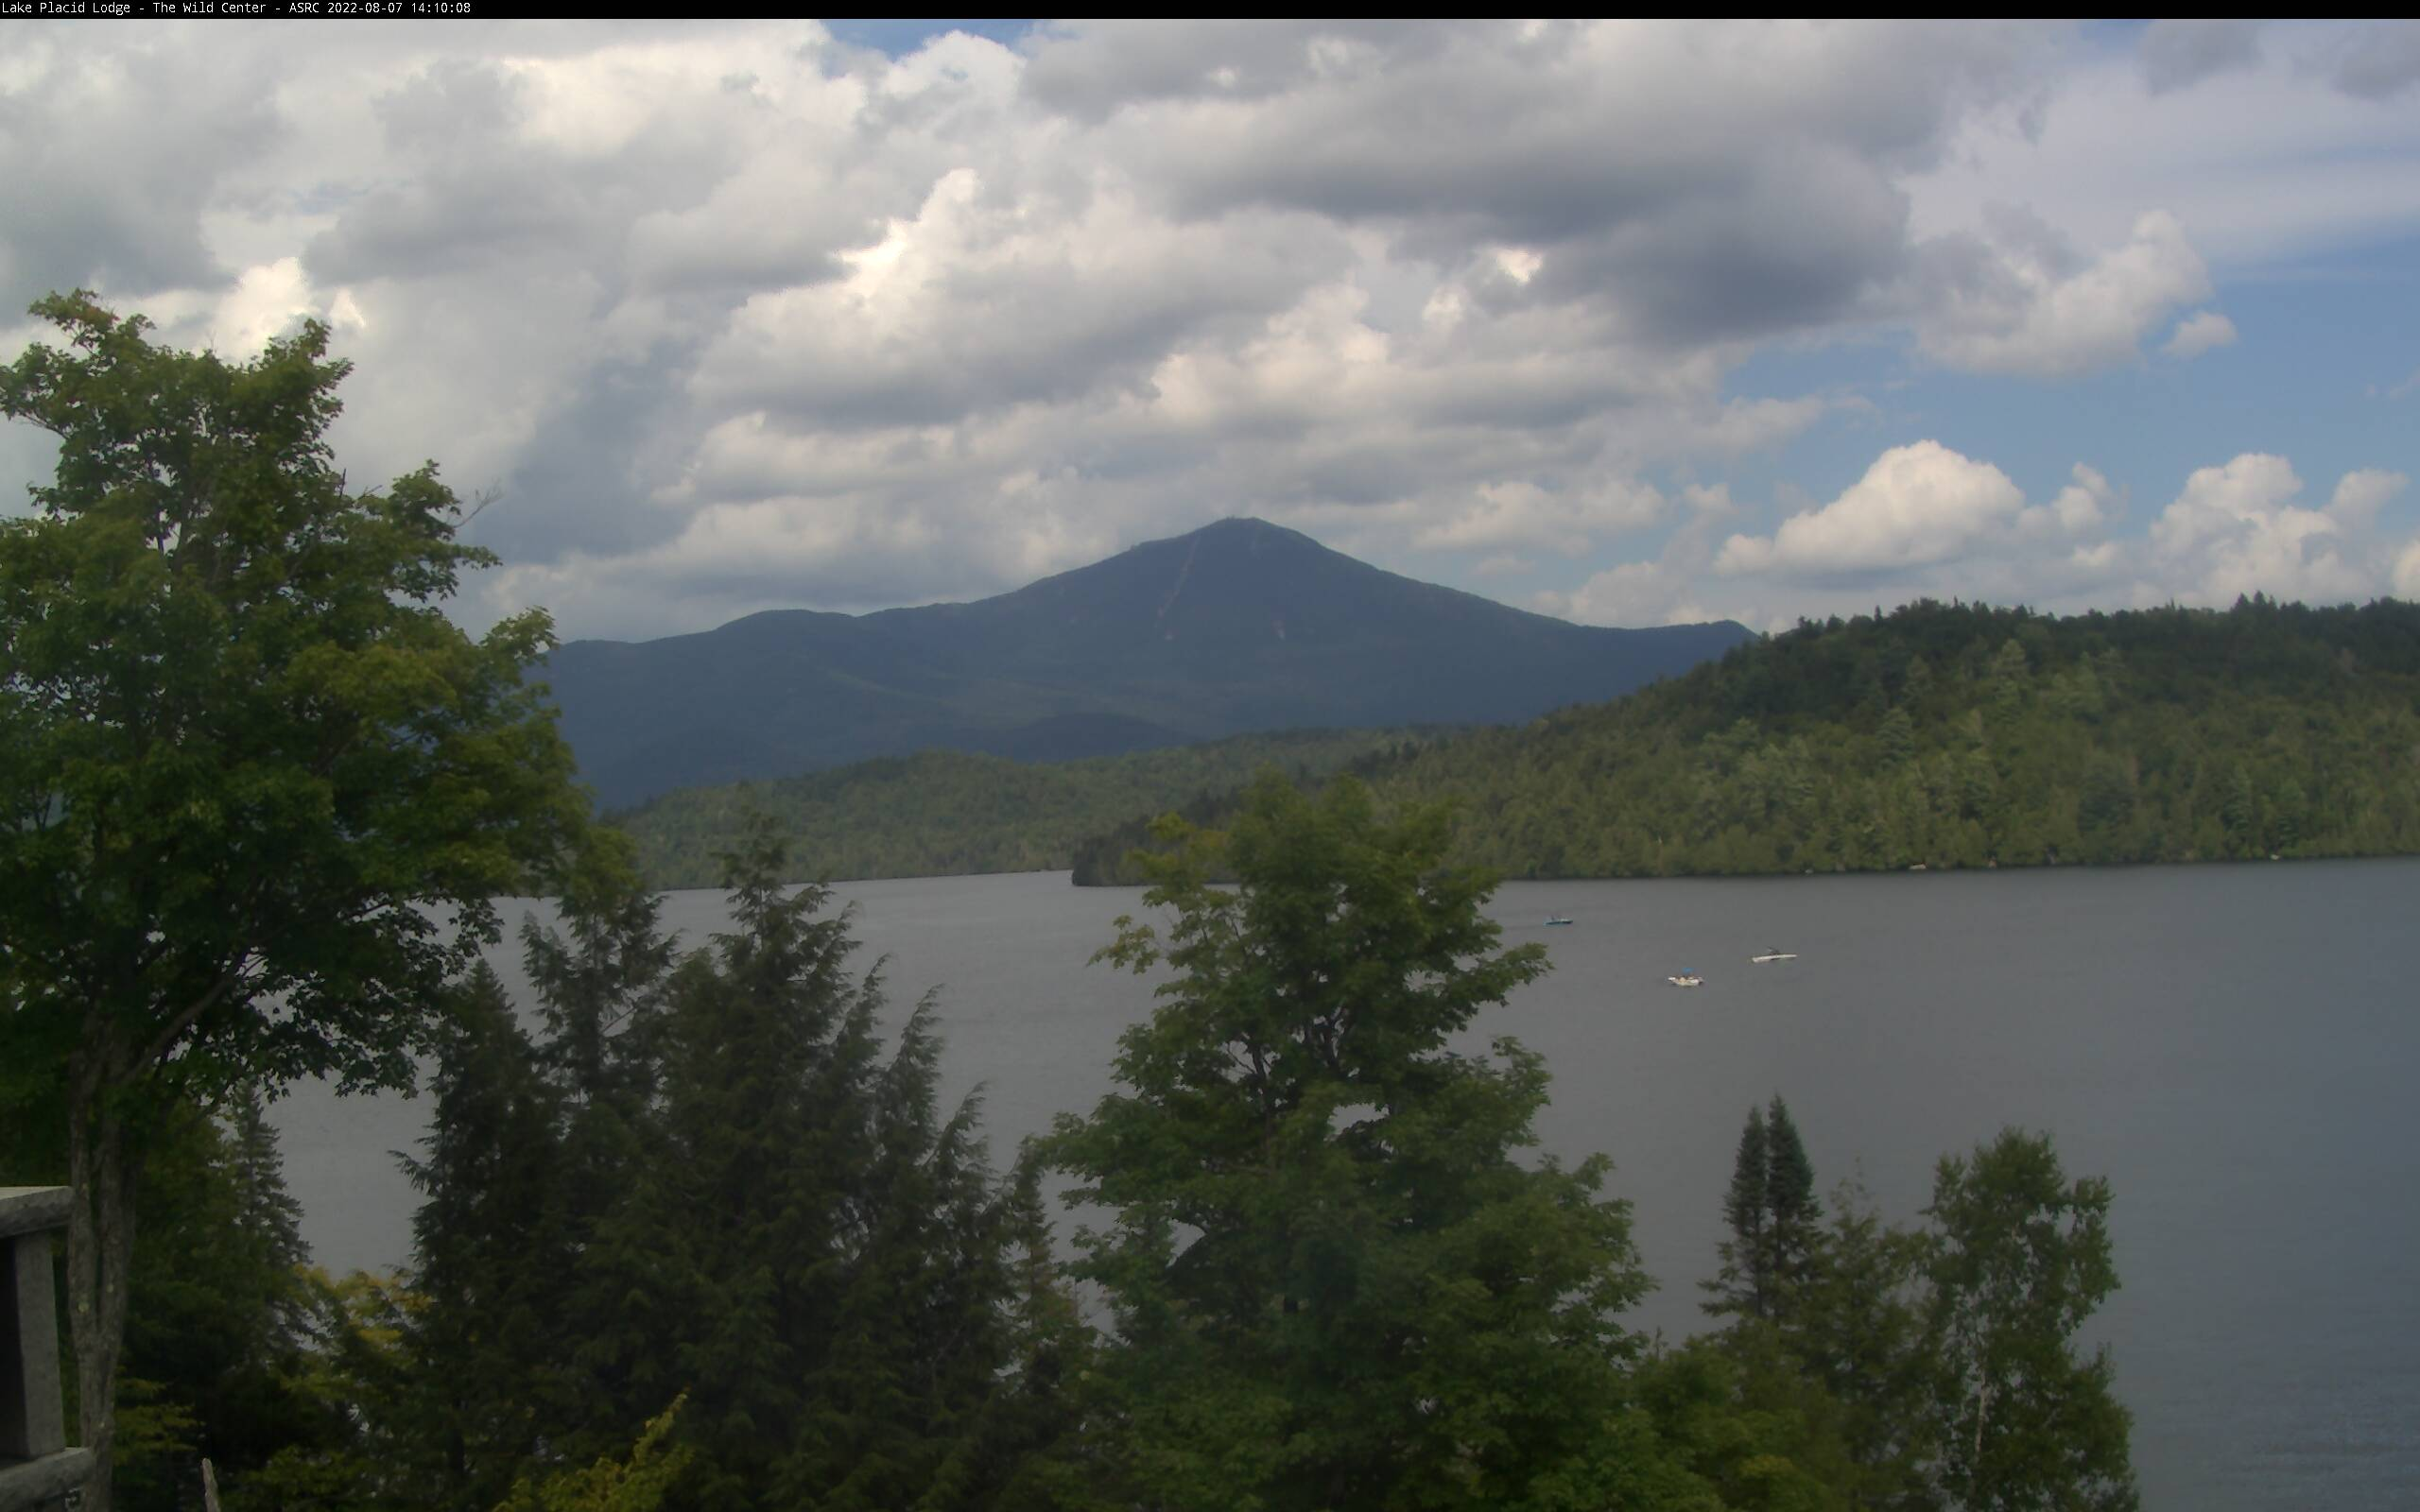 webcam image from Whiteface Mountain Summit